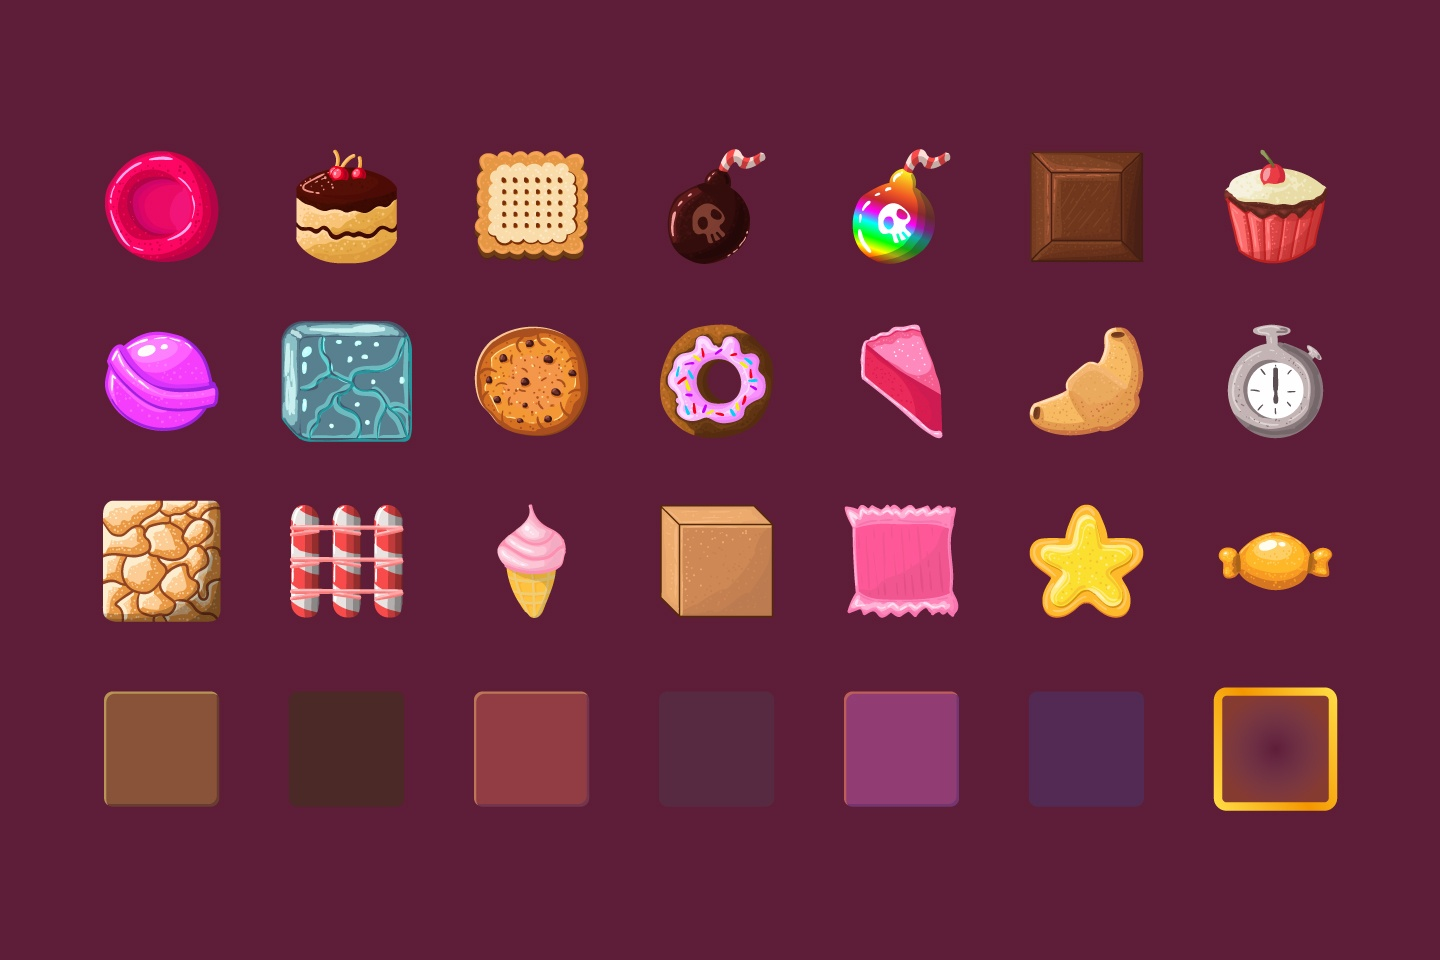 free candy match 3 game items craftpixnet